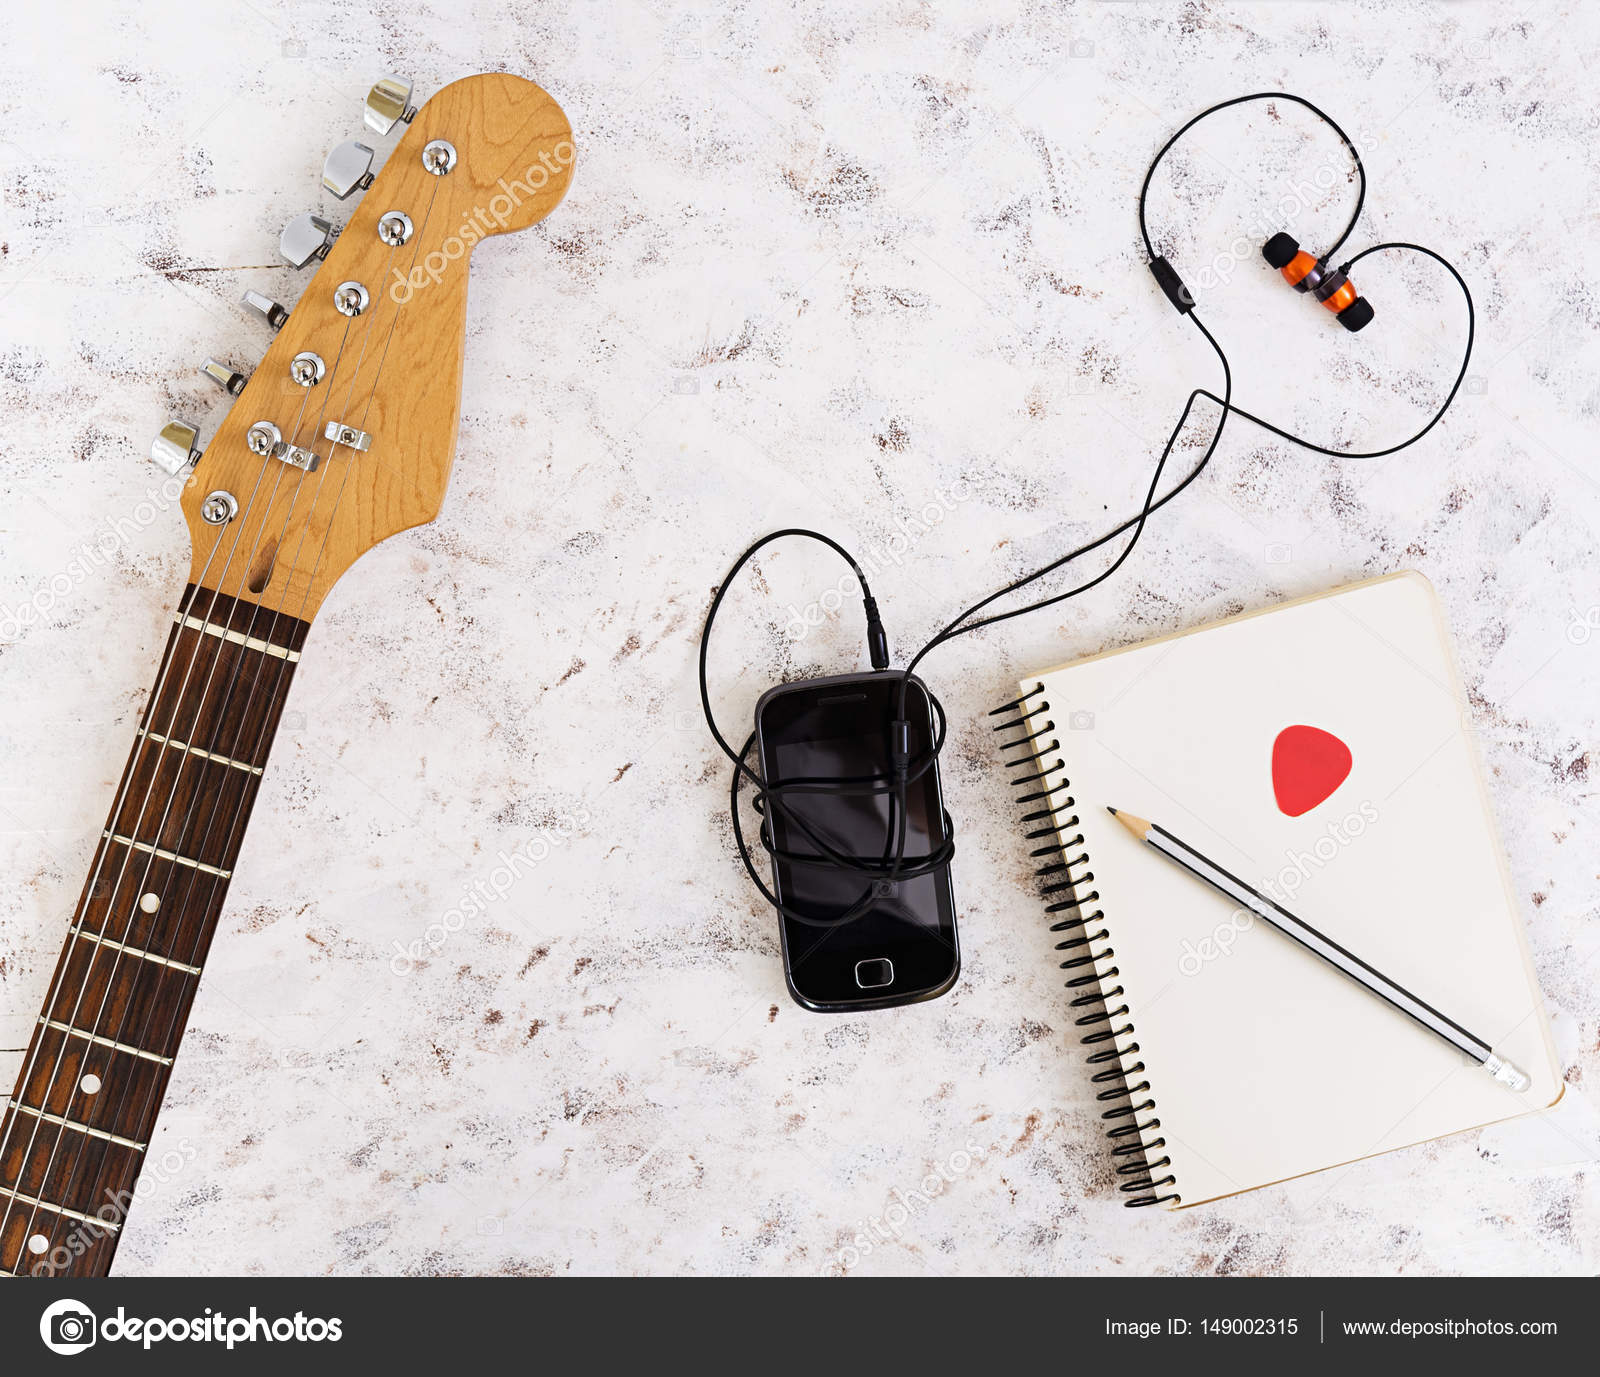 Music Stuff Guitar Pedal Headphone Mobile Phone On White To String A Guitarguitar Technique Electric Acoustic Background Top View Flat Lay Photo By Aeril